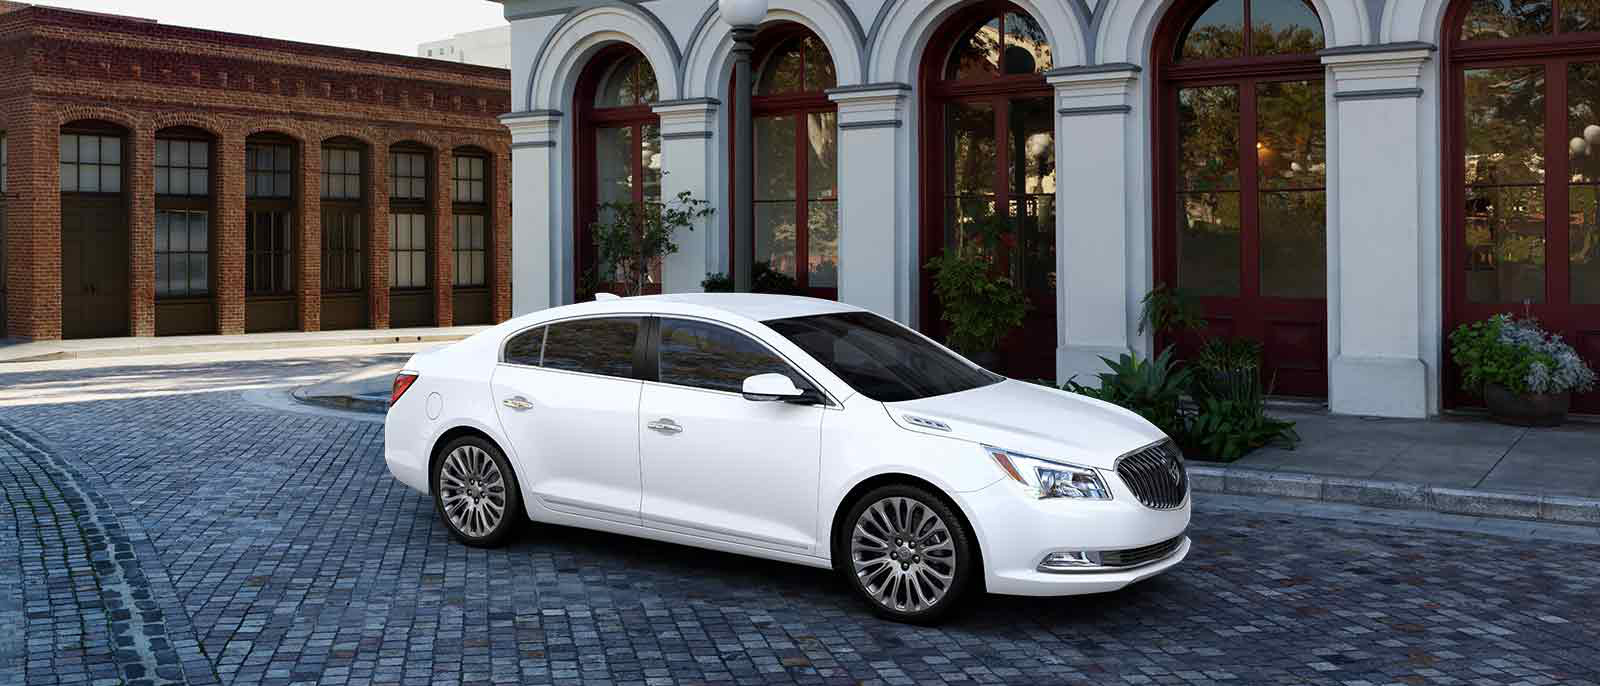 2016 Buick LaCrosse Exterior Side